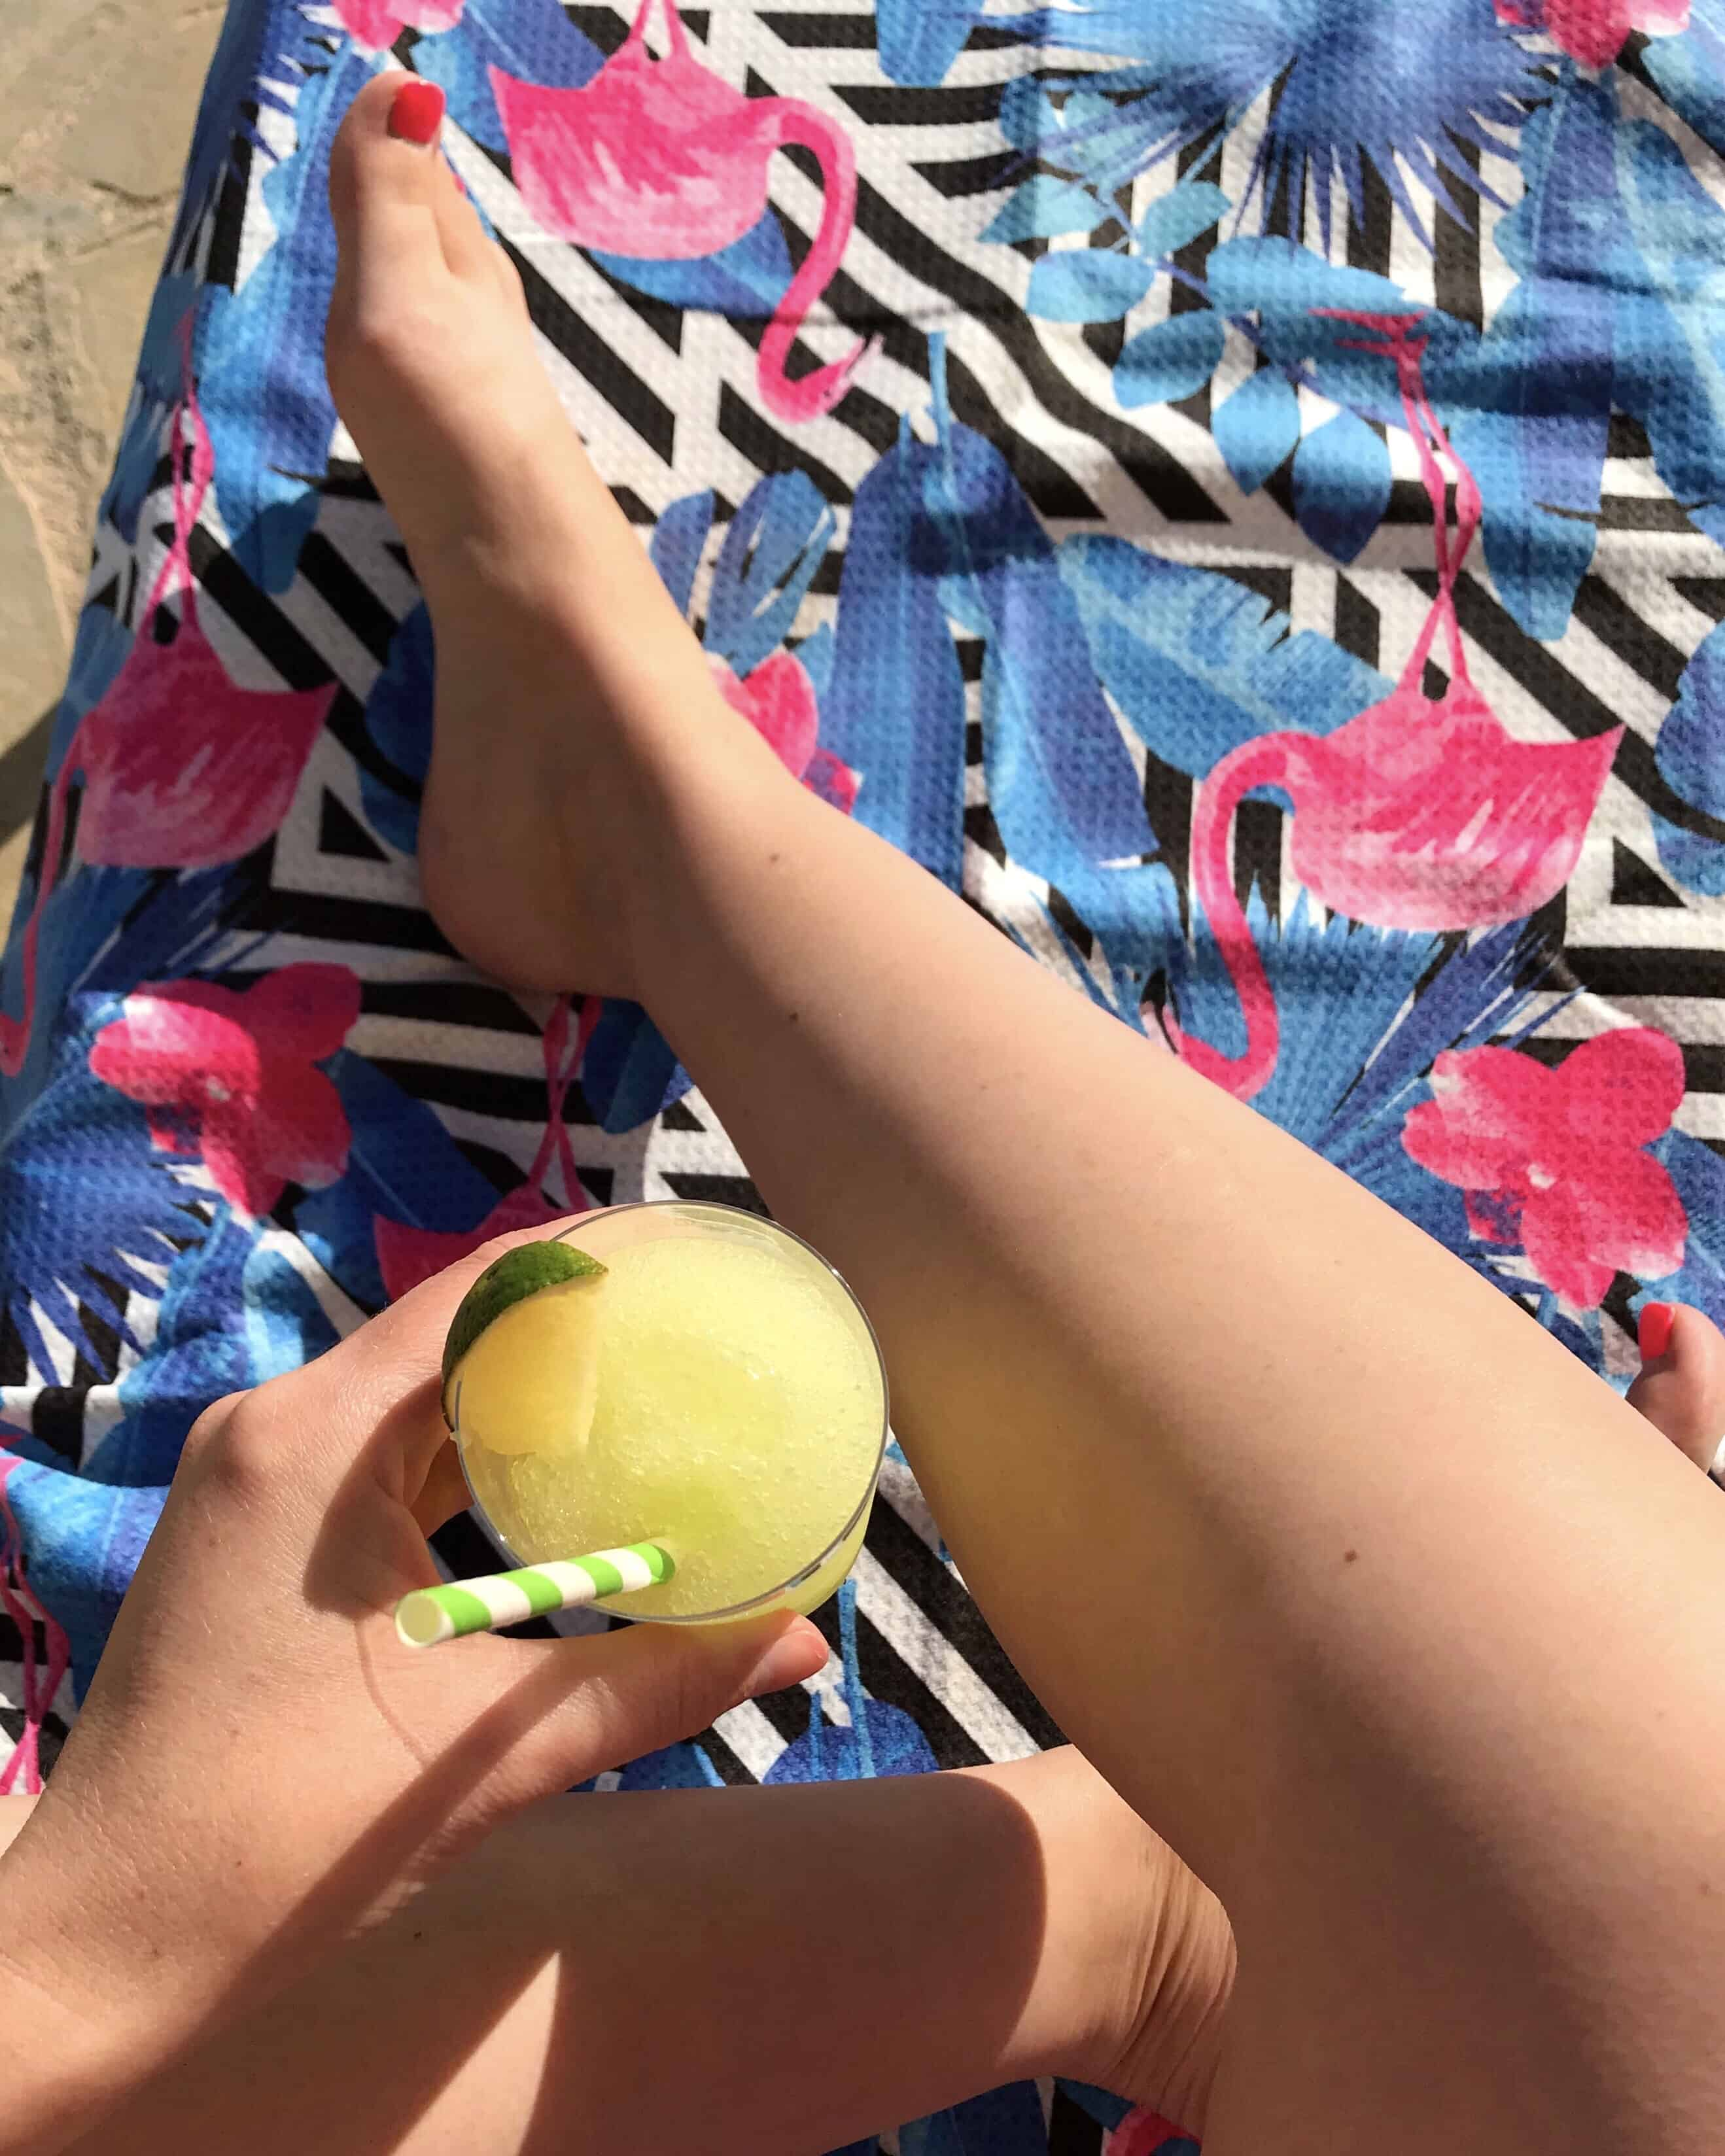 Cocktail on a sun lounger with flamingo design Tesalate beach towel